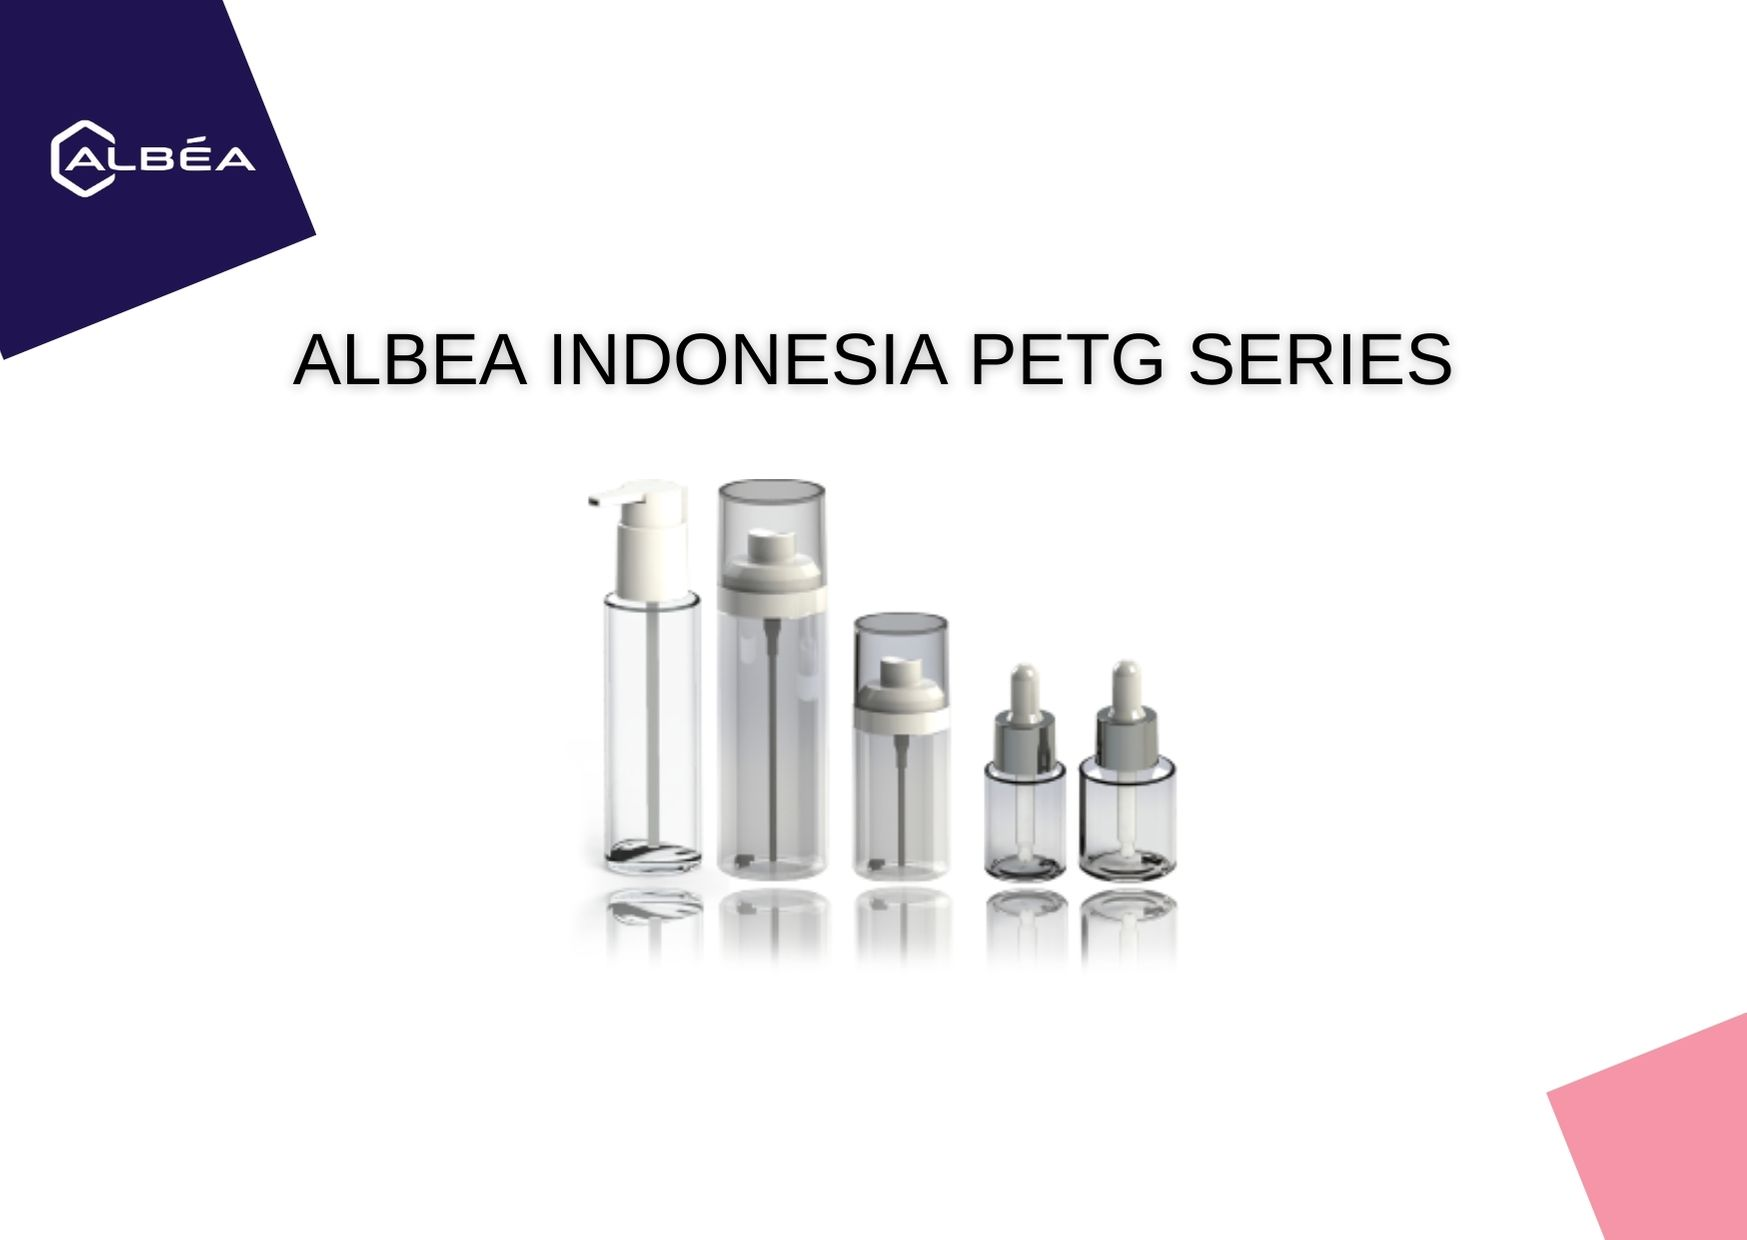 Albea Indonesia PETG Series image